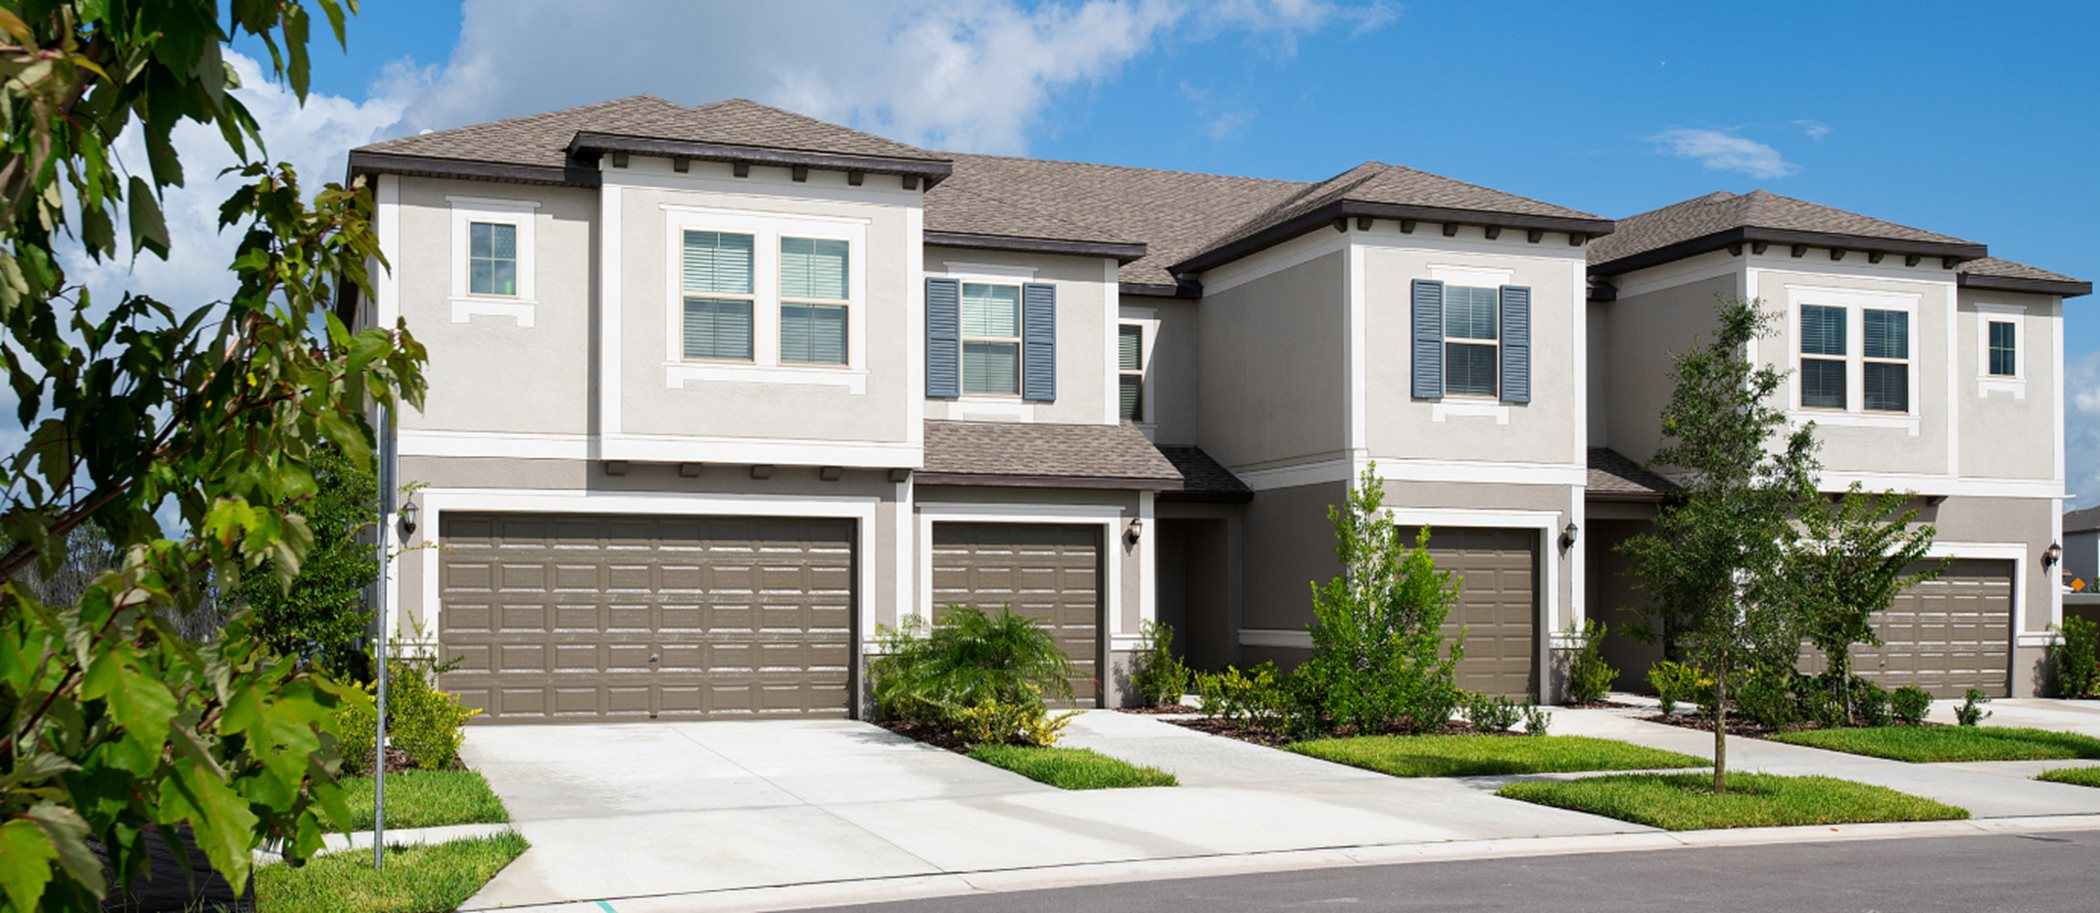 Epperson The Townhomes Home